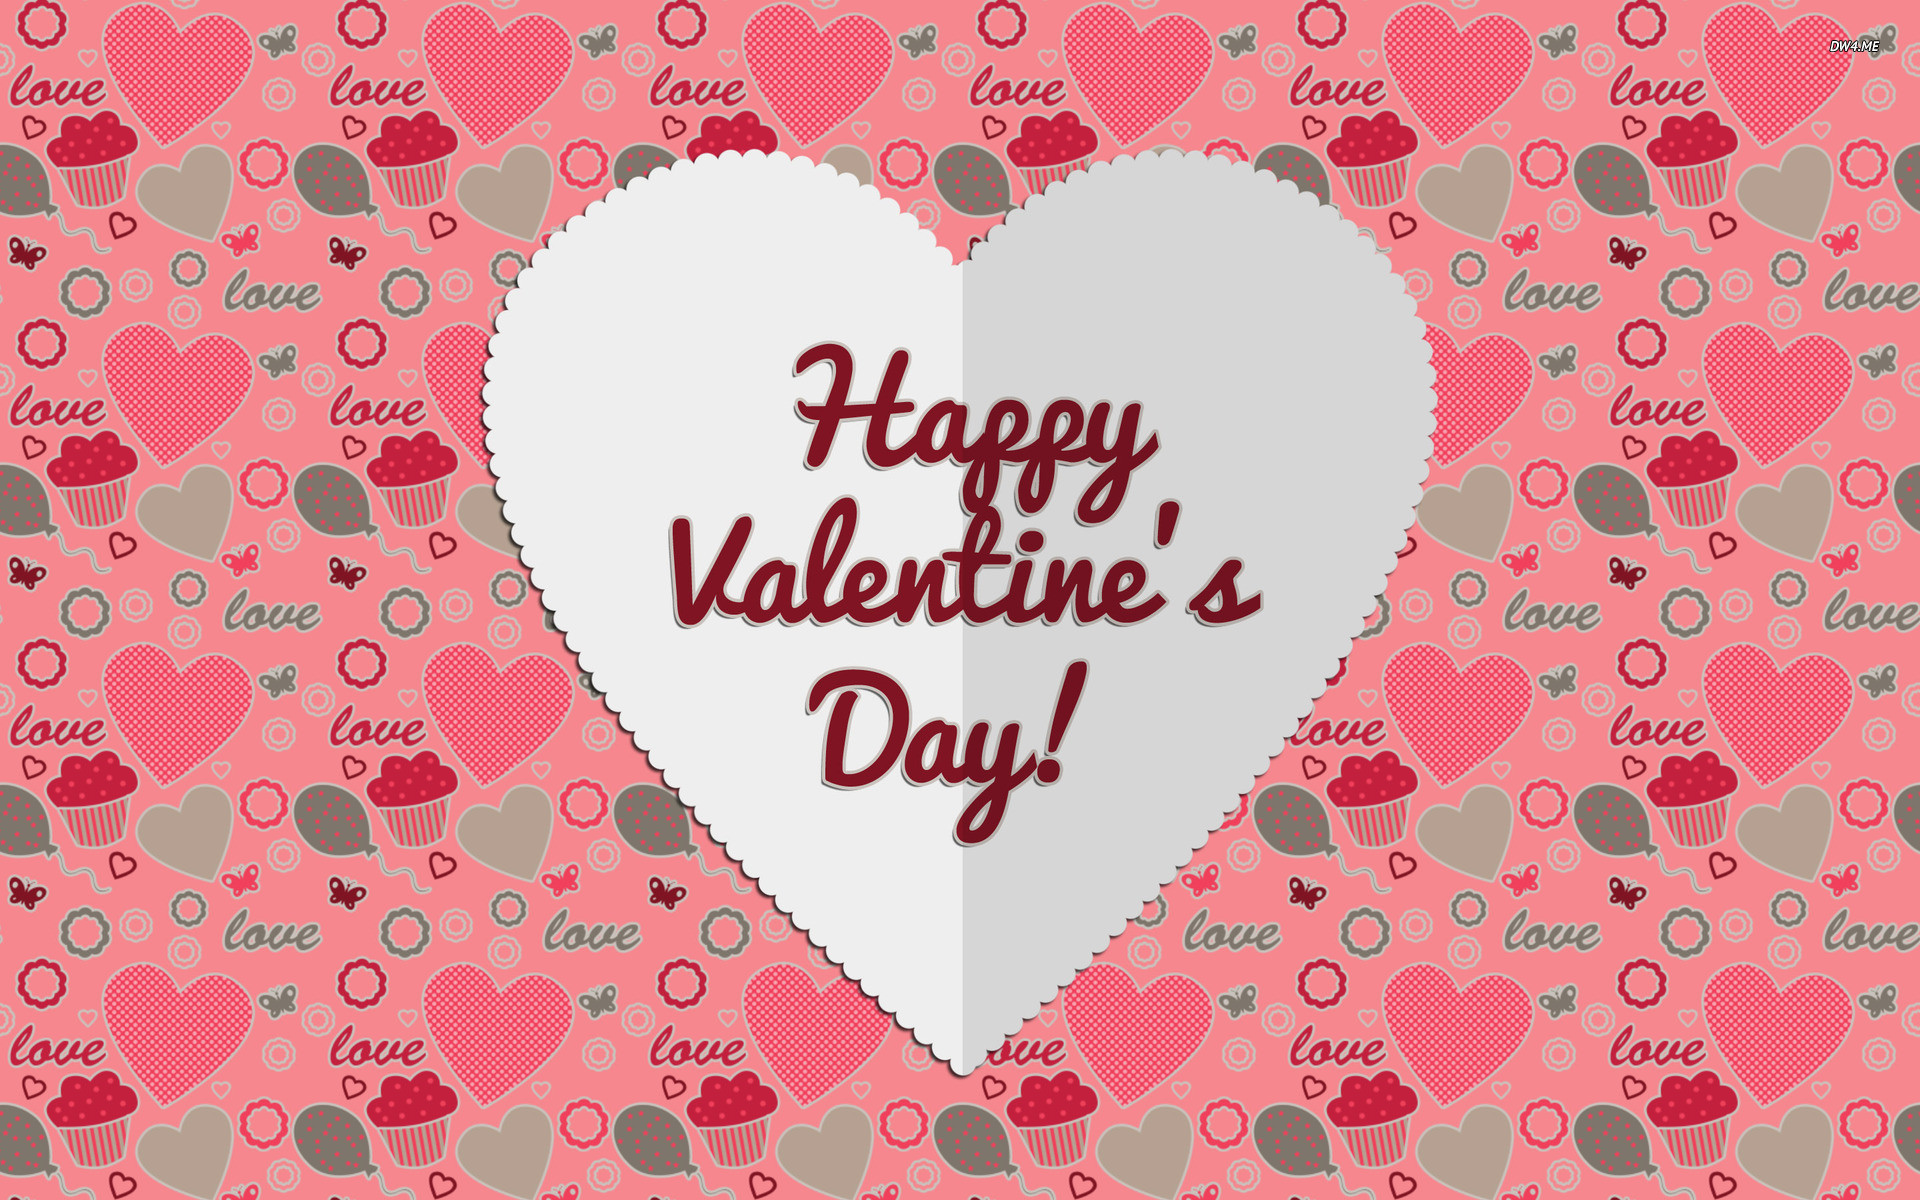 Google Valentine Wallpaper And Screensavers 63 Images